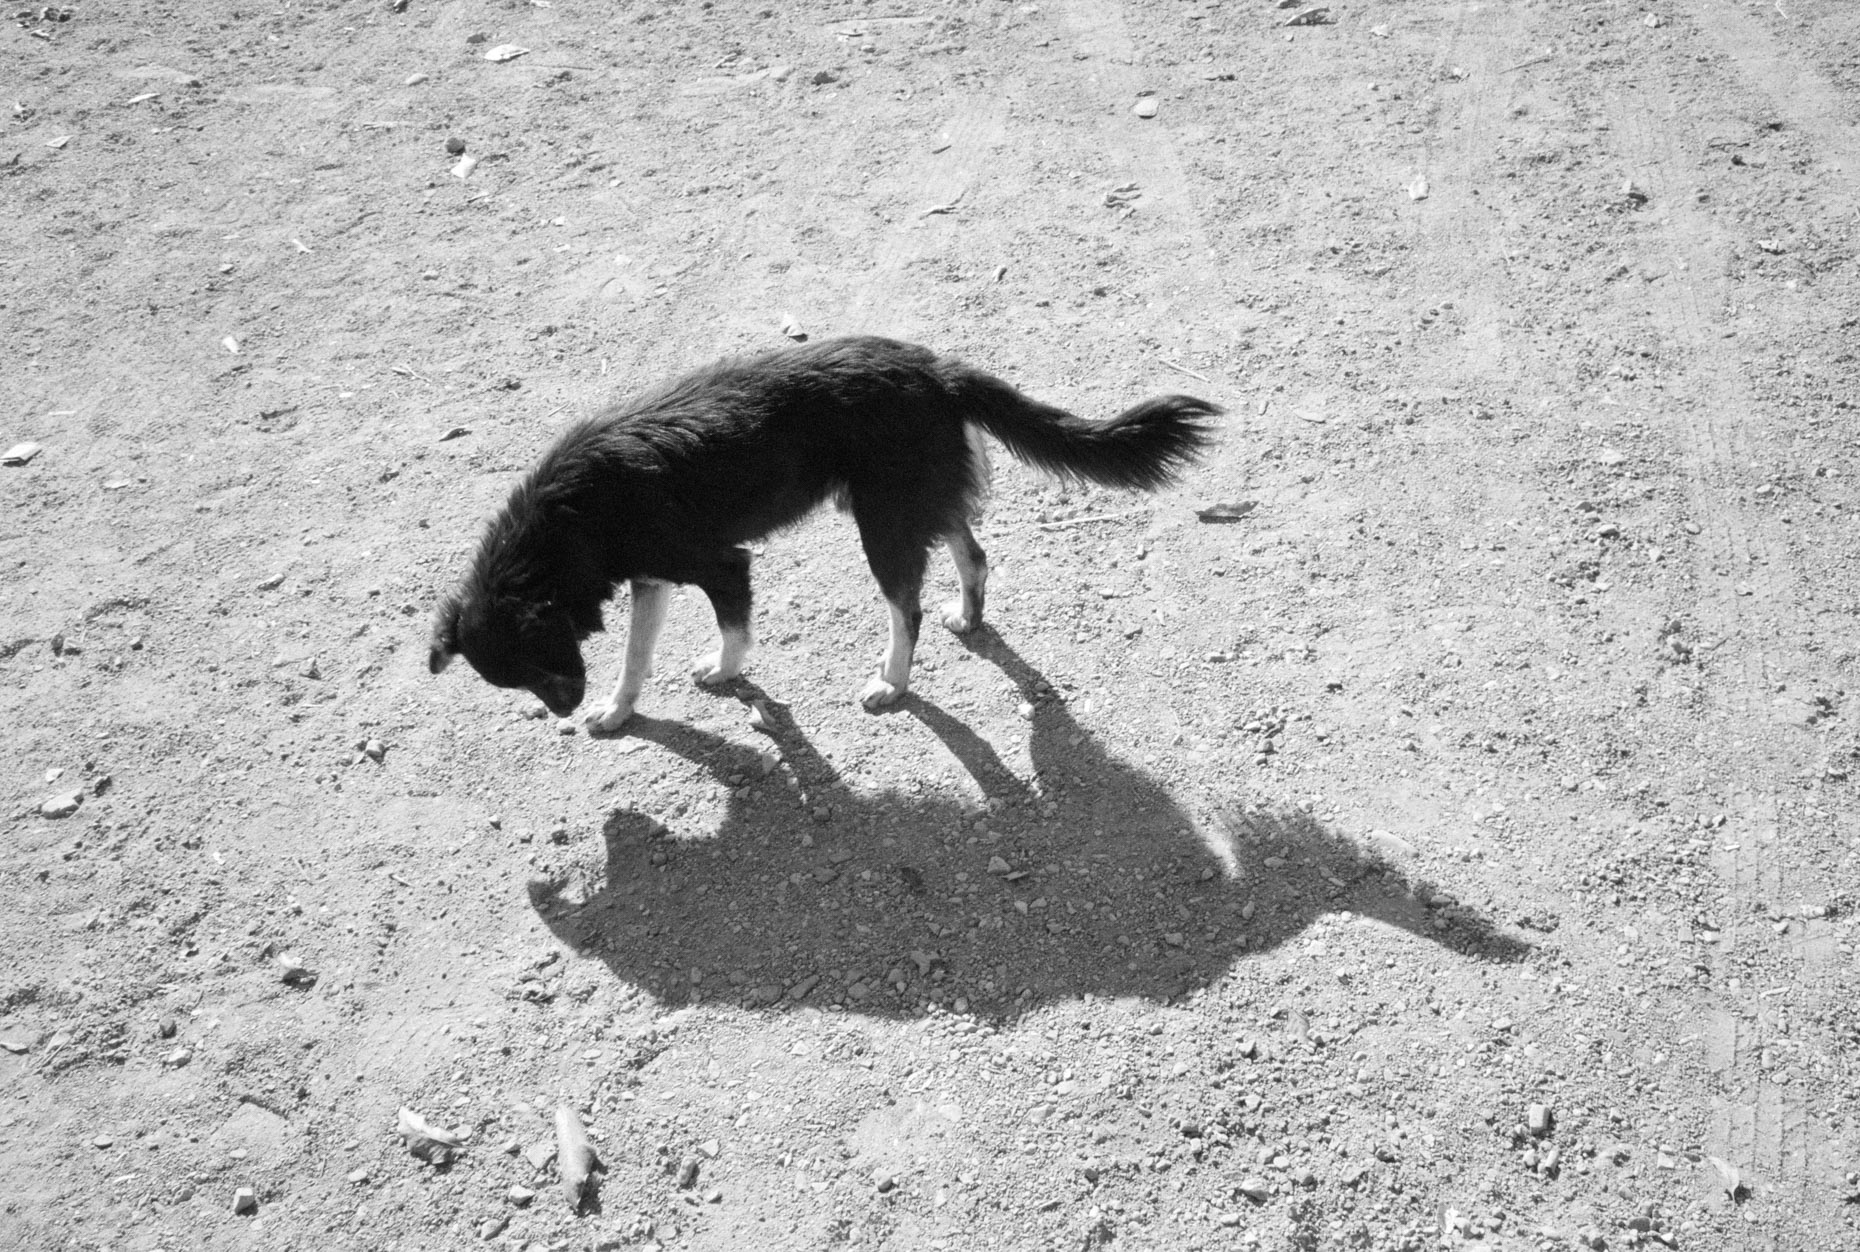 Dog Shadow, Rishikesh